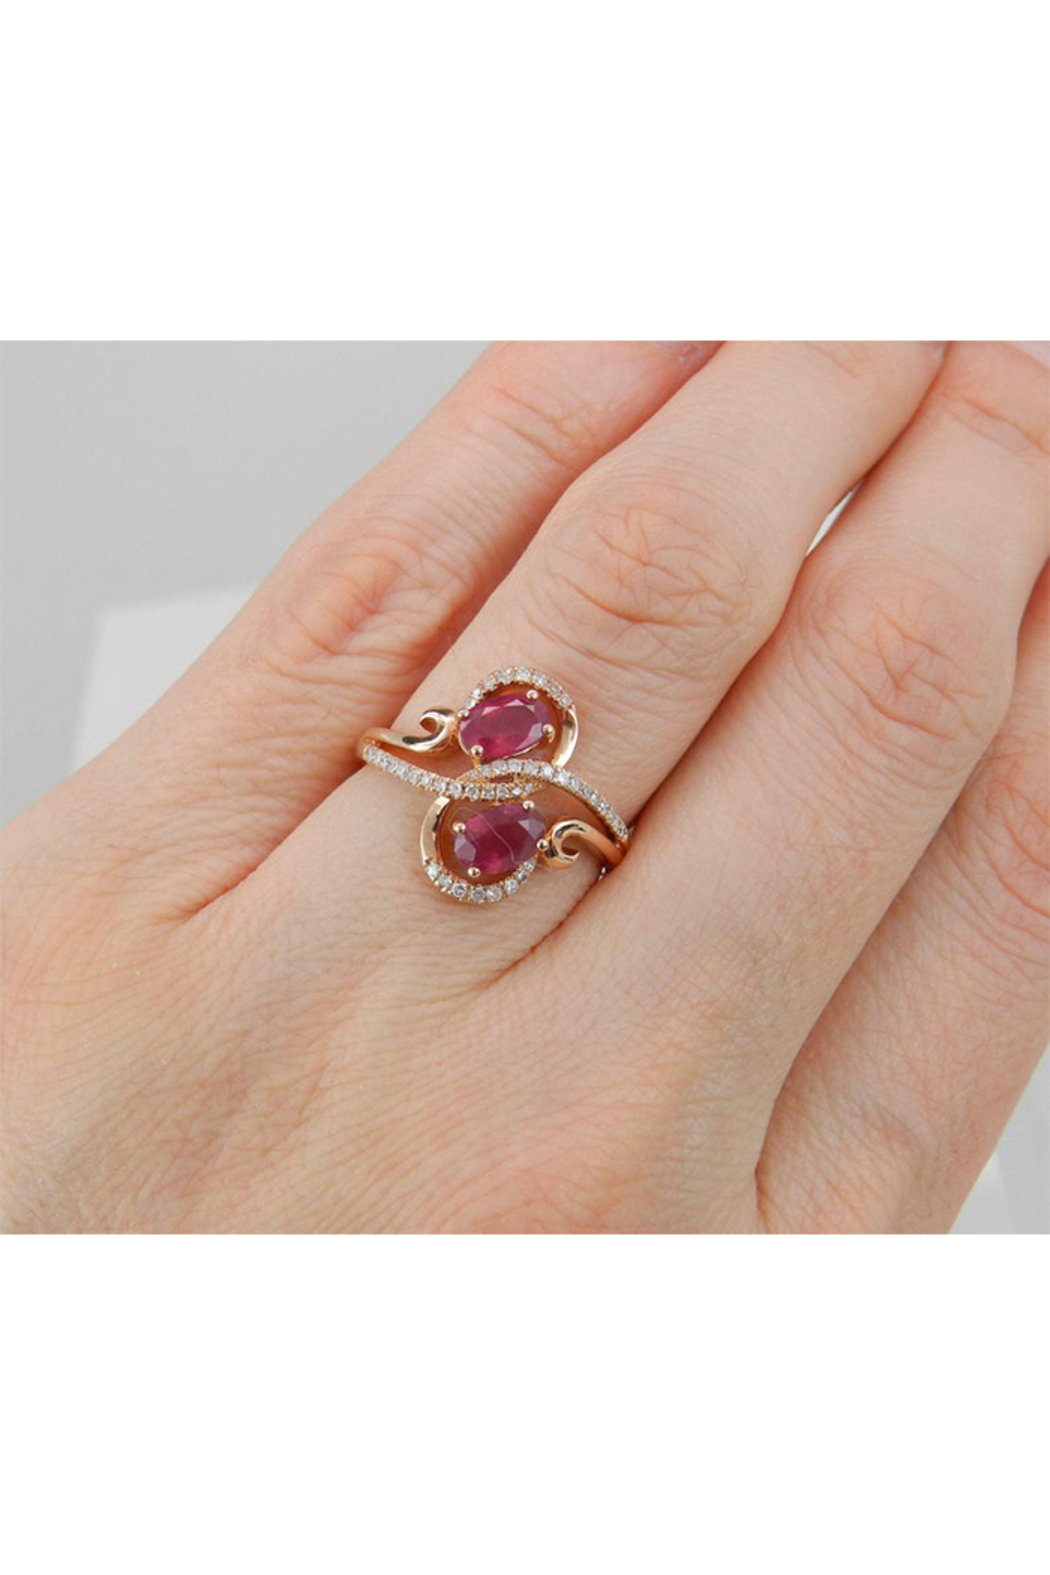 Margolin & Co 14K Rose Gold 1.40 ct Diamond and Ruby Cocktail Ring, Two Stone Right Hand Ring, Size 7, July Gemstone - Back Cropped Image